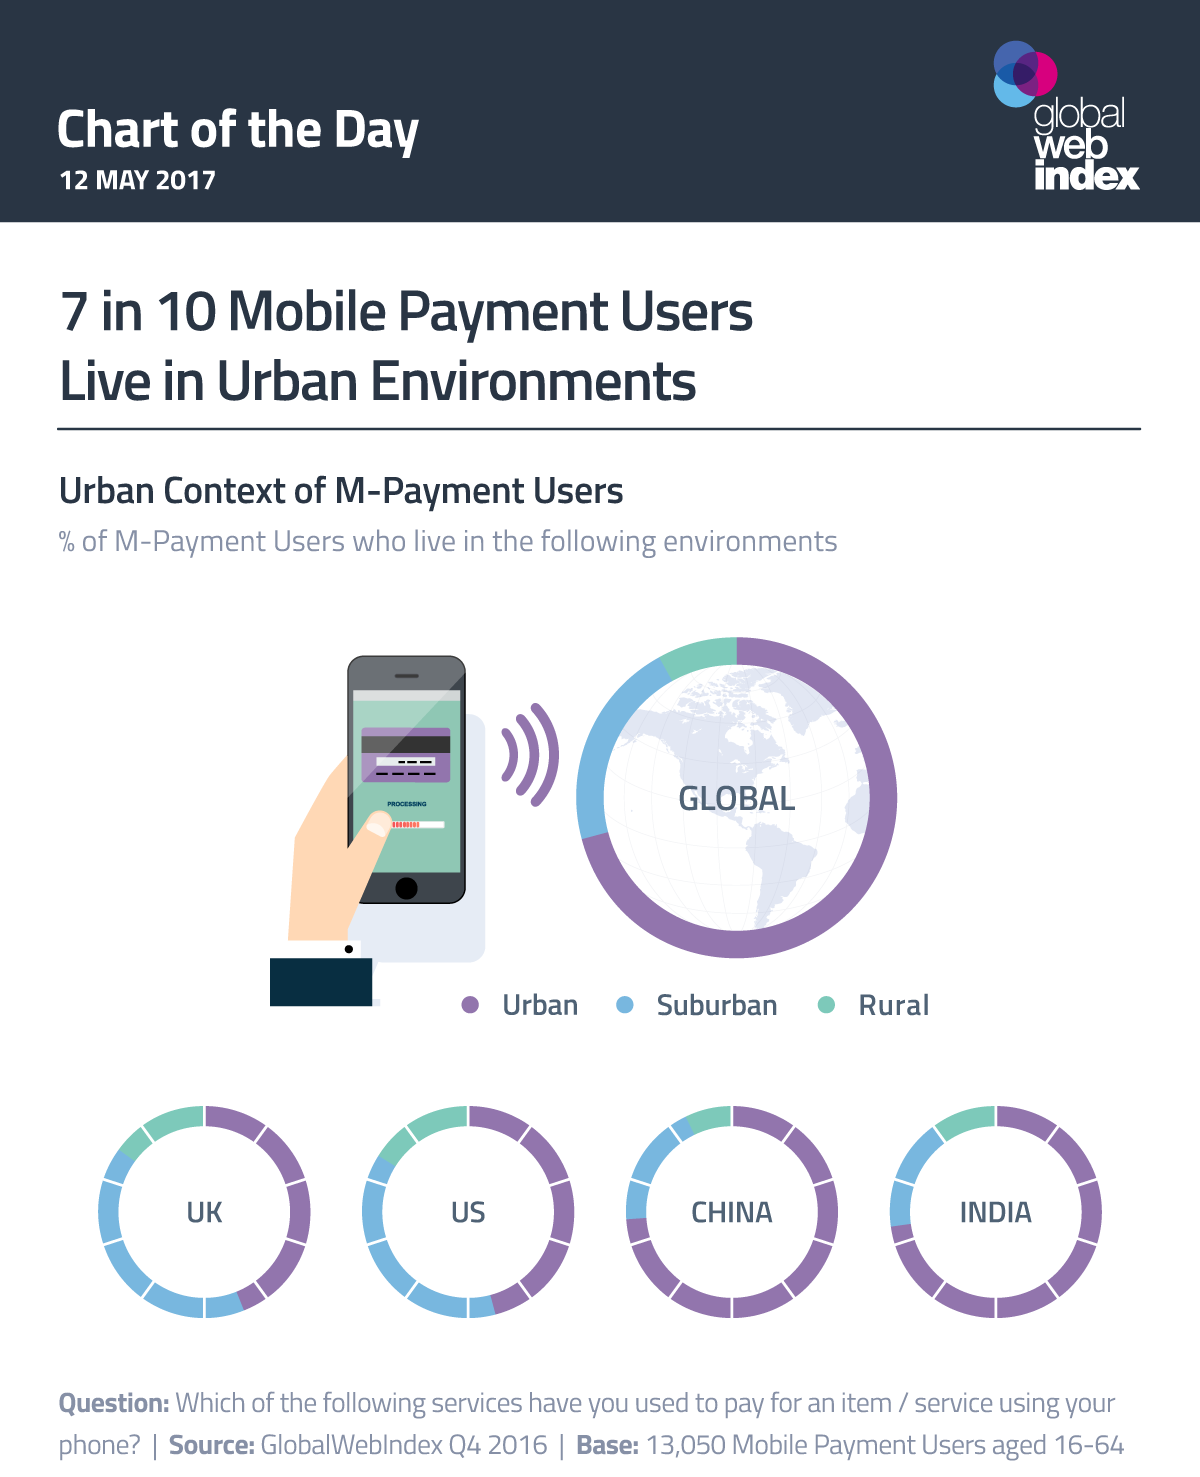 7 in 10 Mobile Payment Users Live in Urban Environments